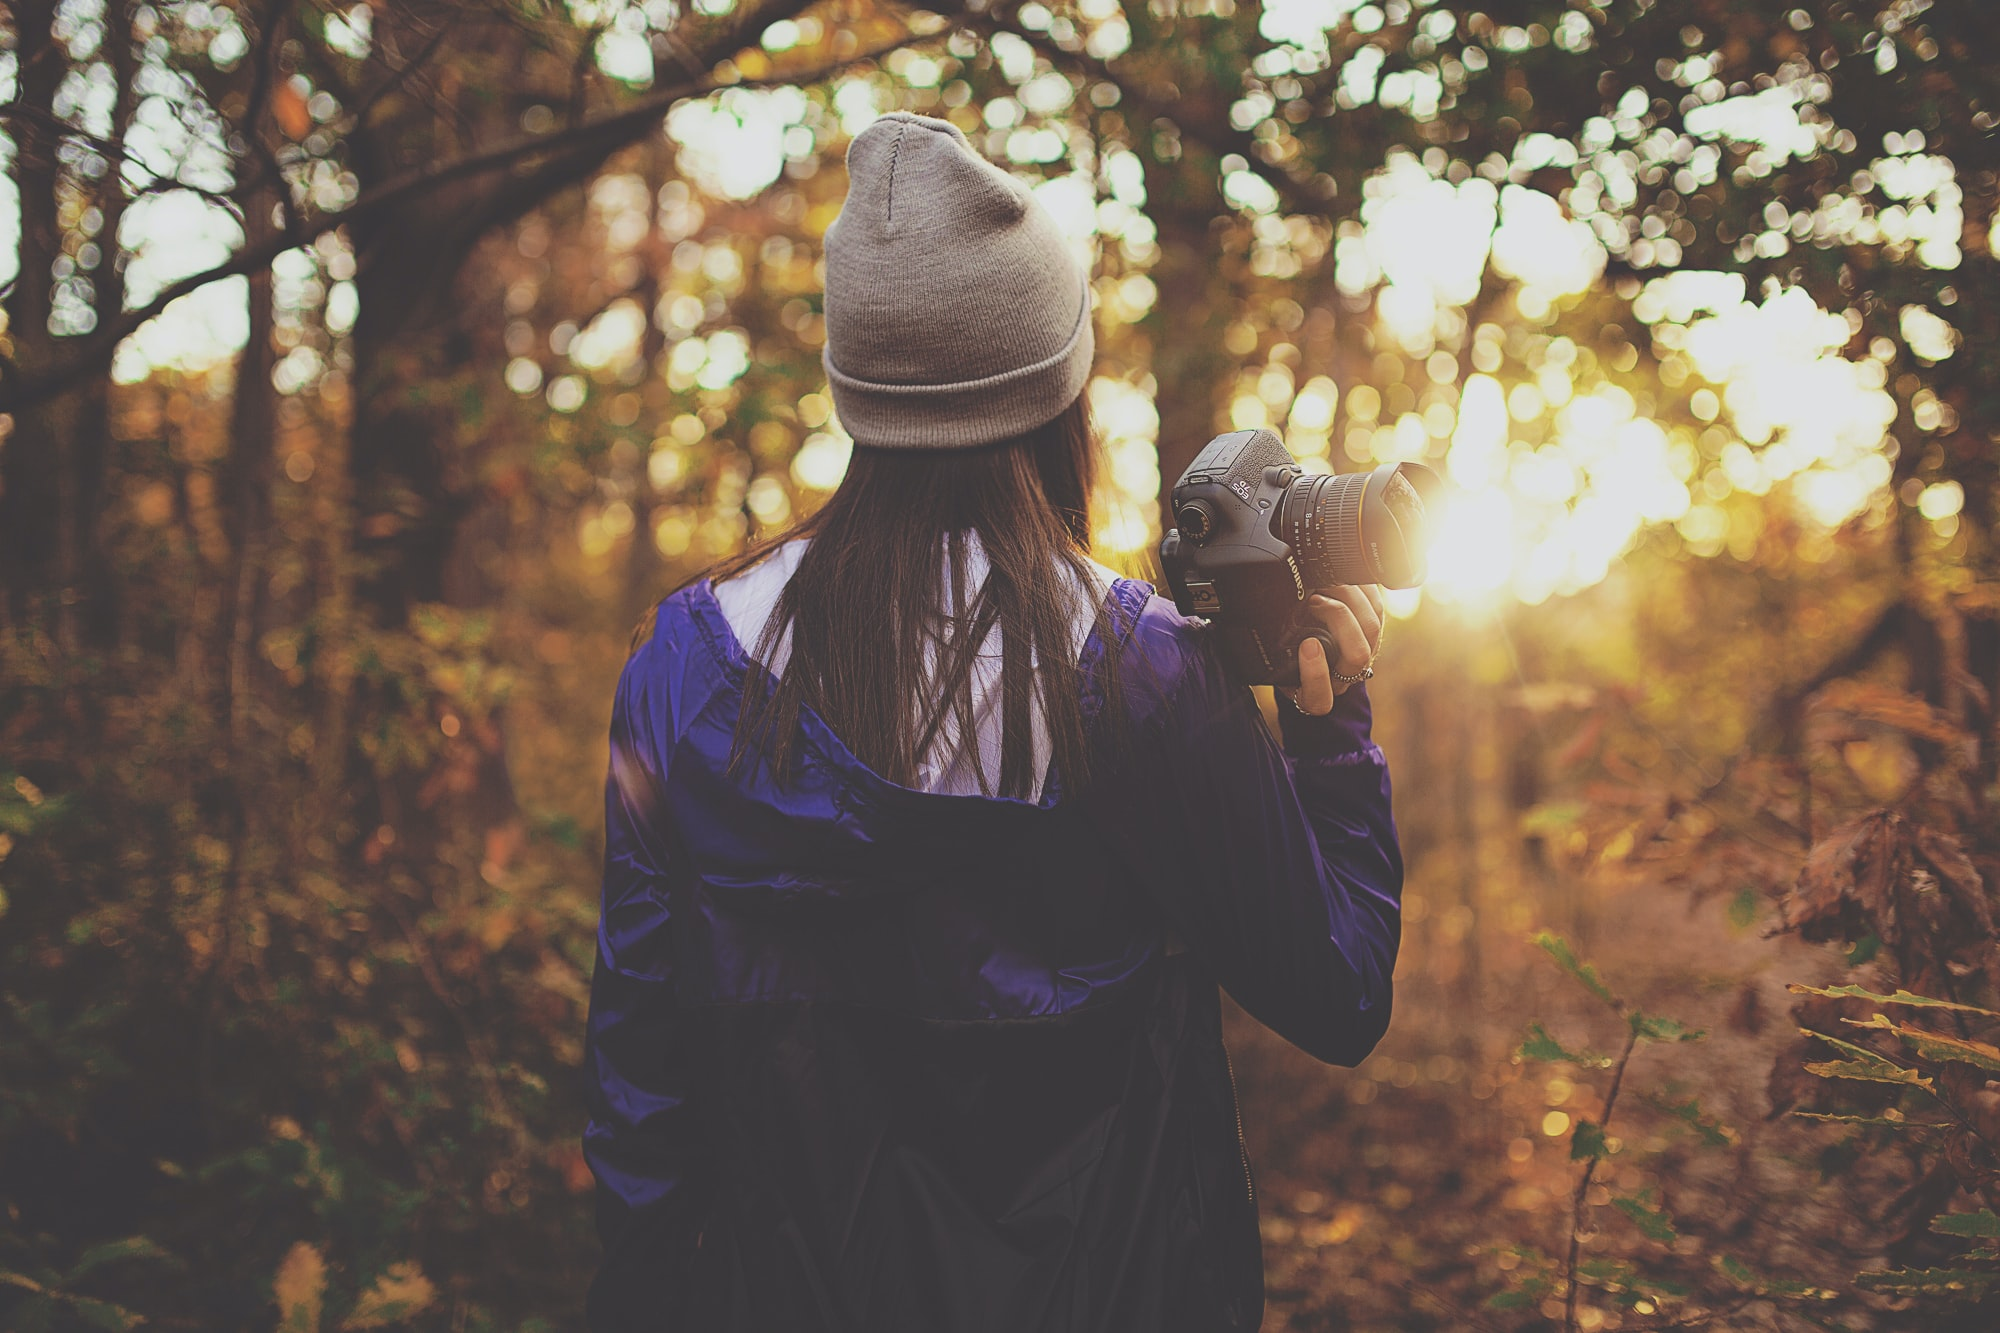 woman in forest holding DSLR camera during golden hour